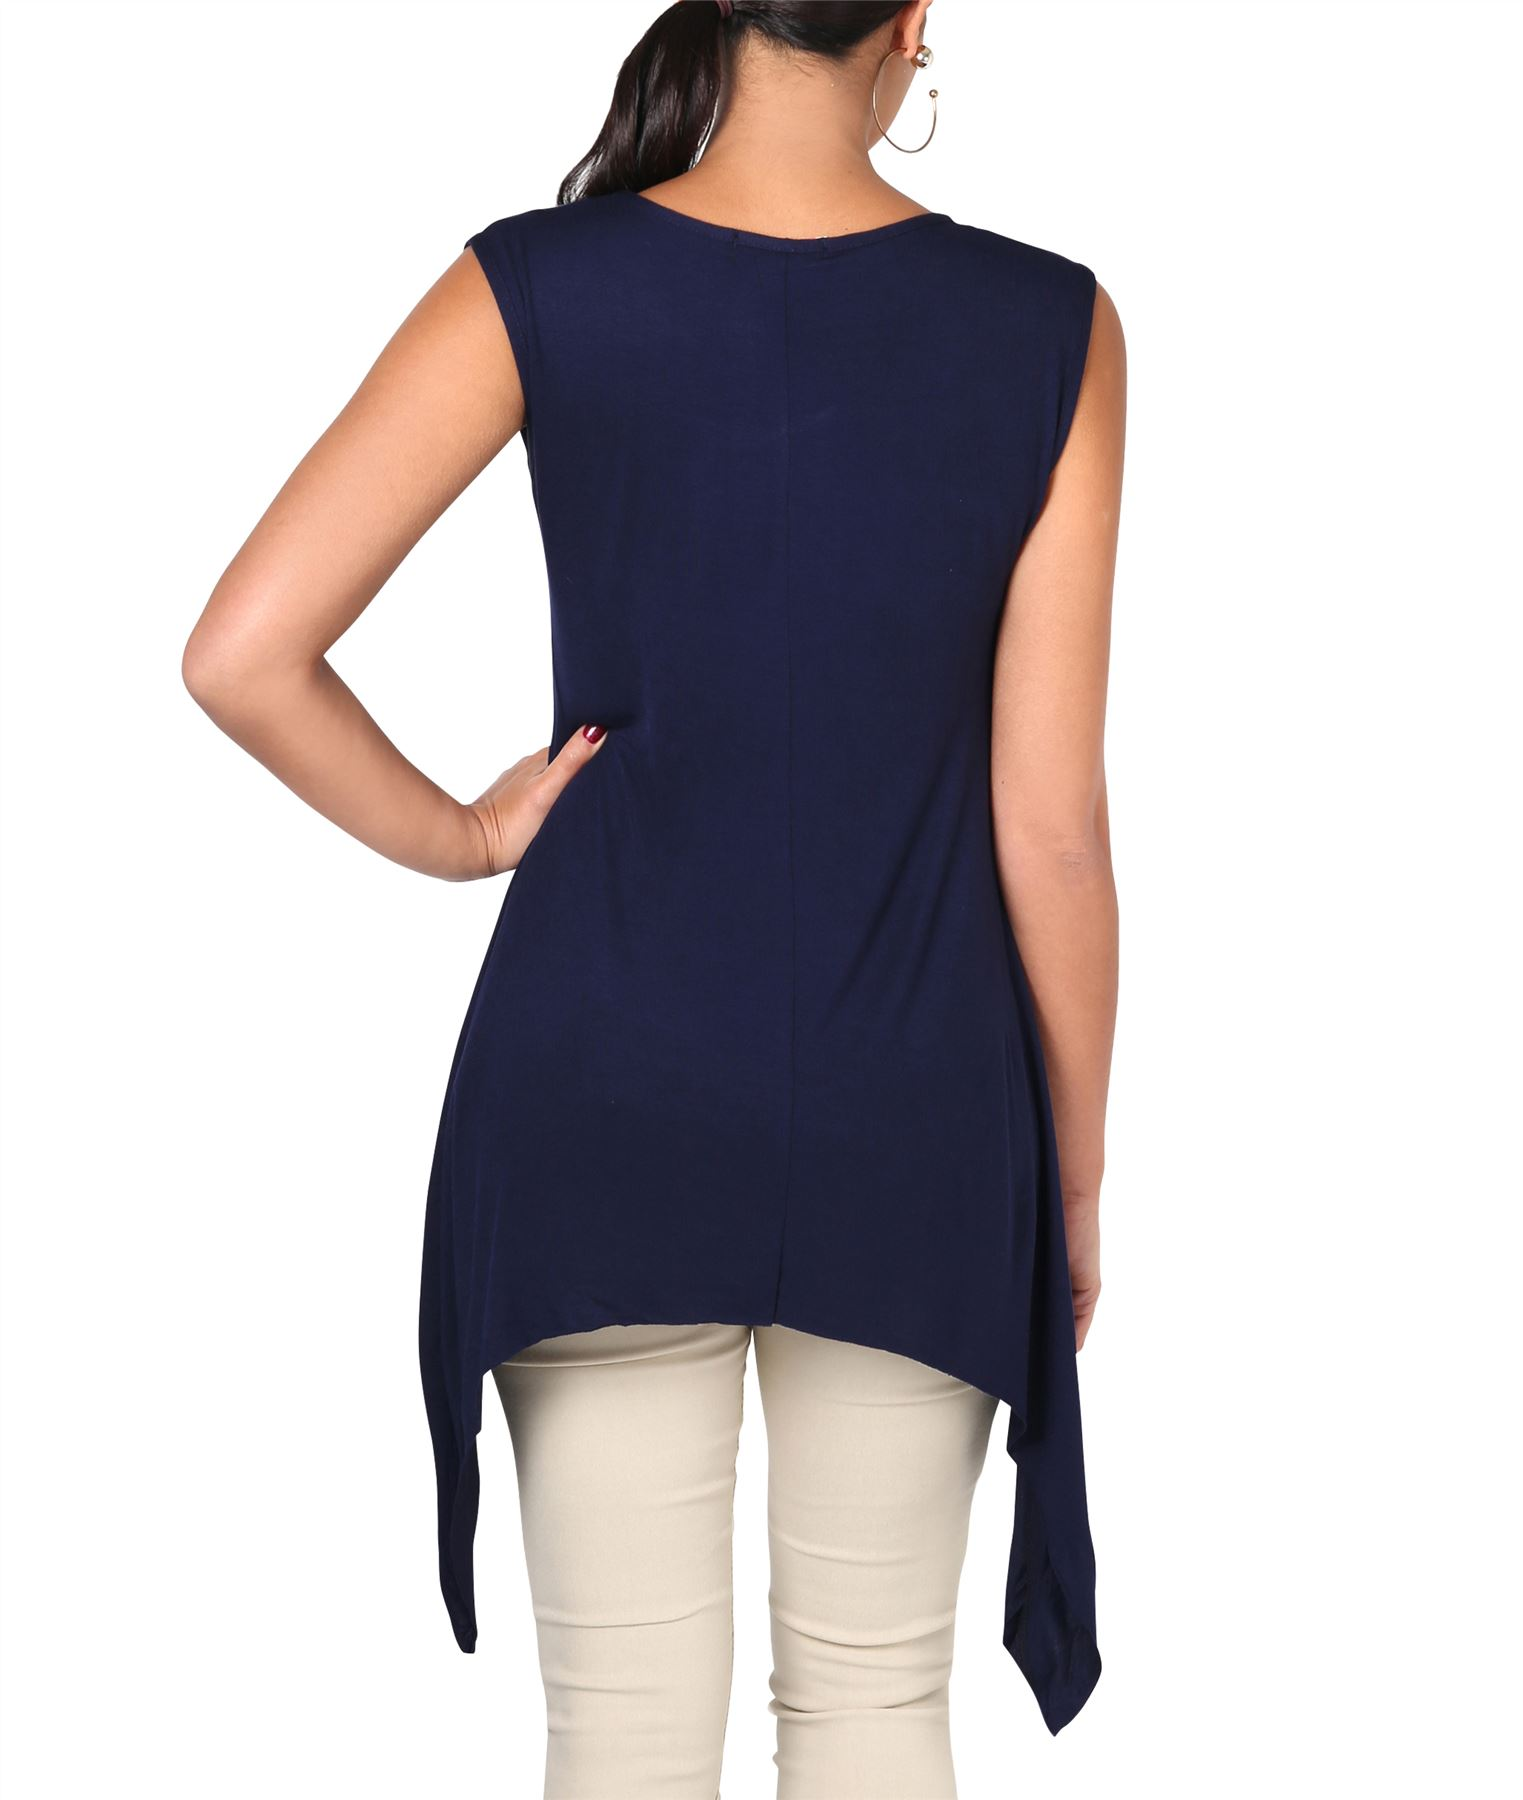 Women-Long-Top-Sleeveless-Pleated-Tee-Shirt-Tunic-Jersey-Stretch-Loose-Fit thumbnail 21